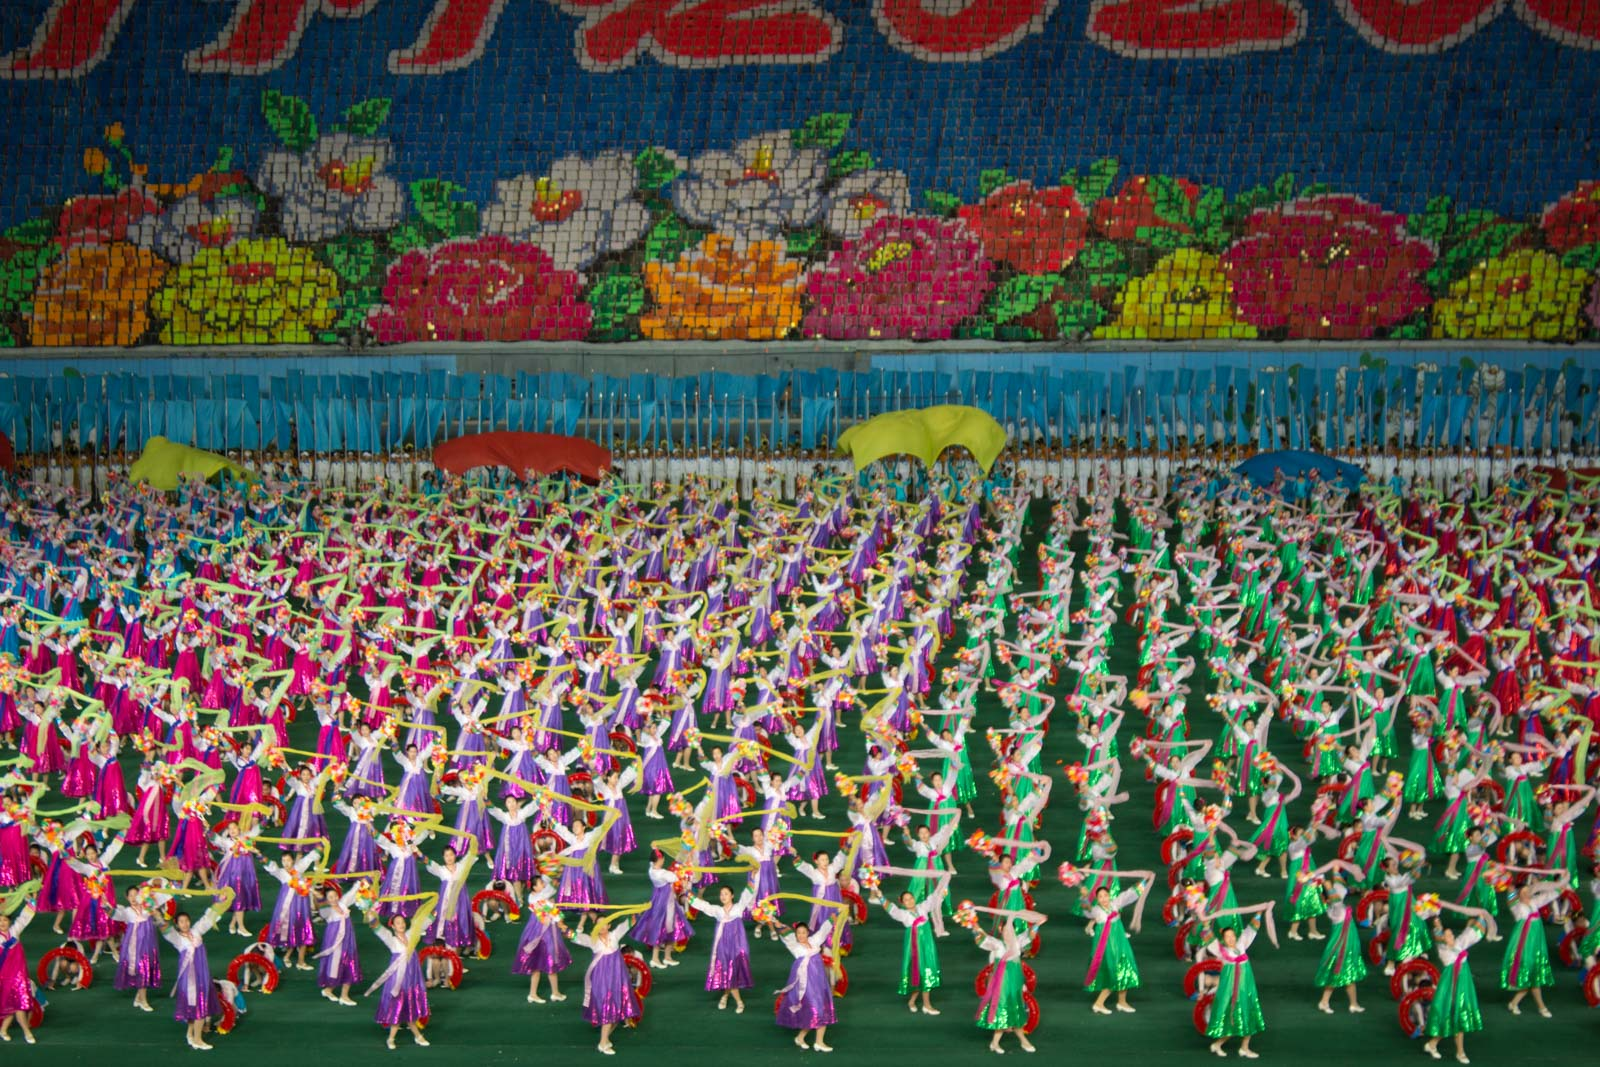 The Mass Games, Pyongyang, North Korea